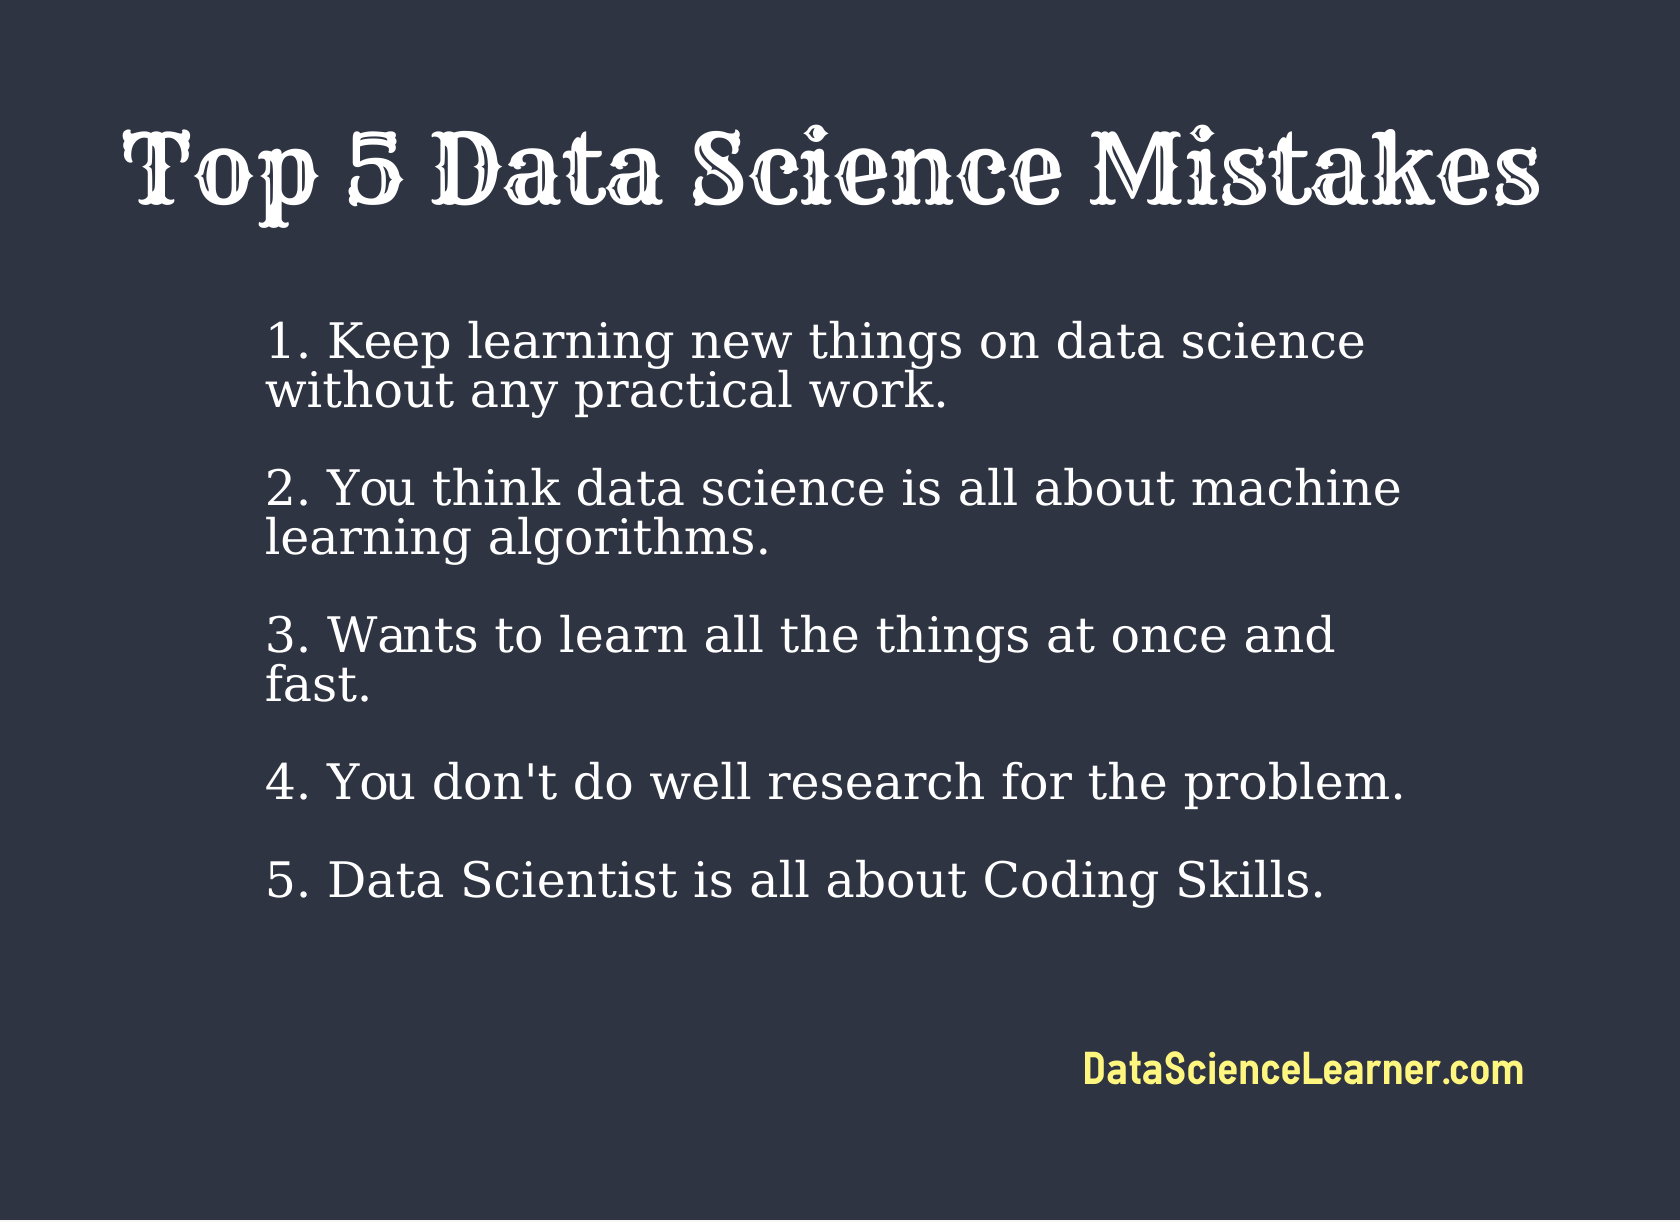 Data Science Mistakes